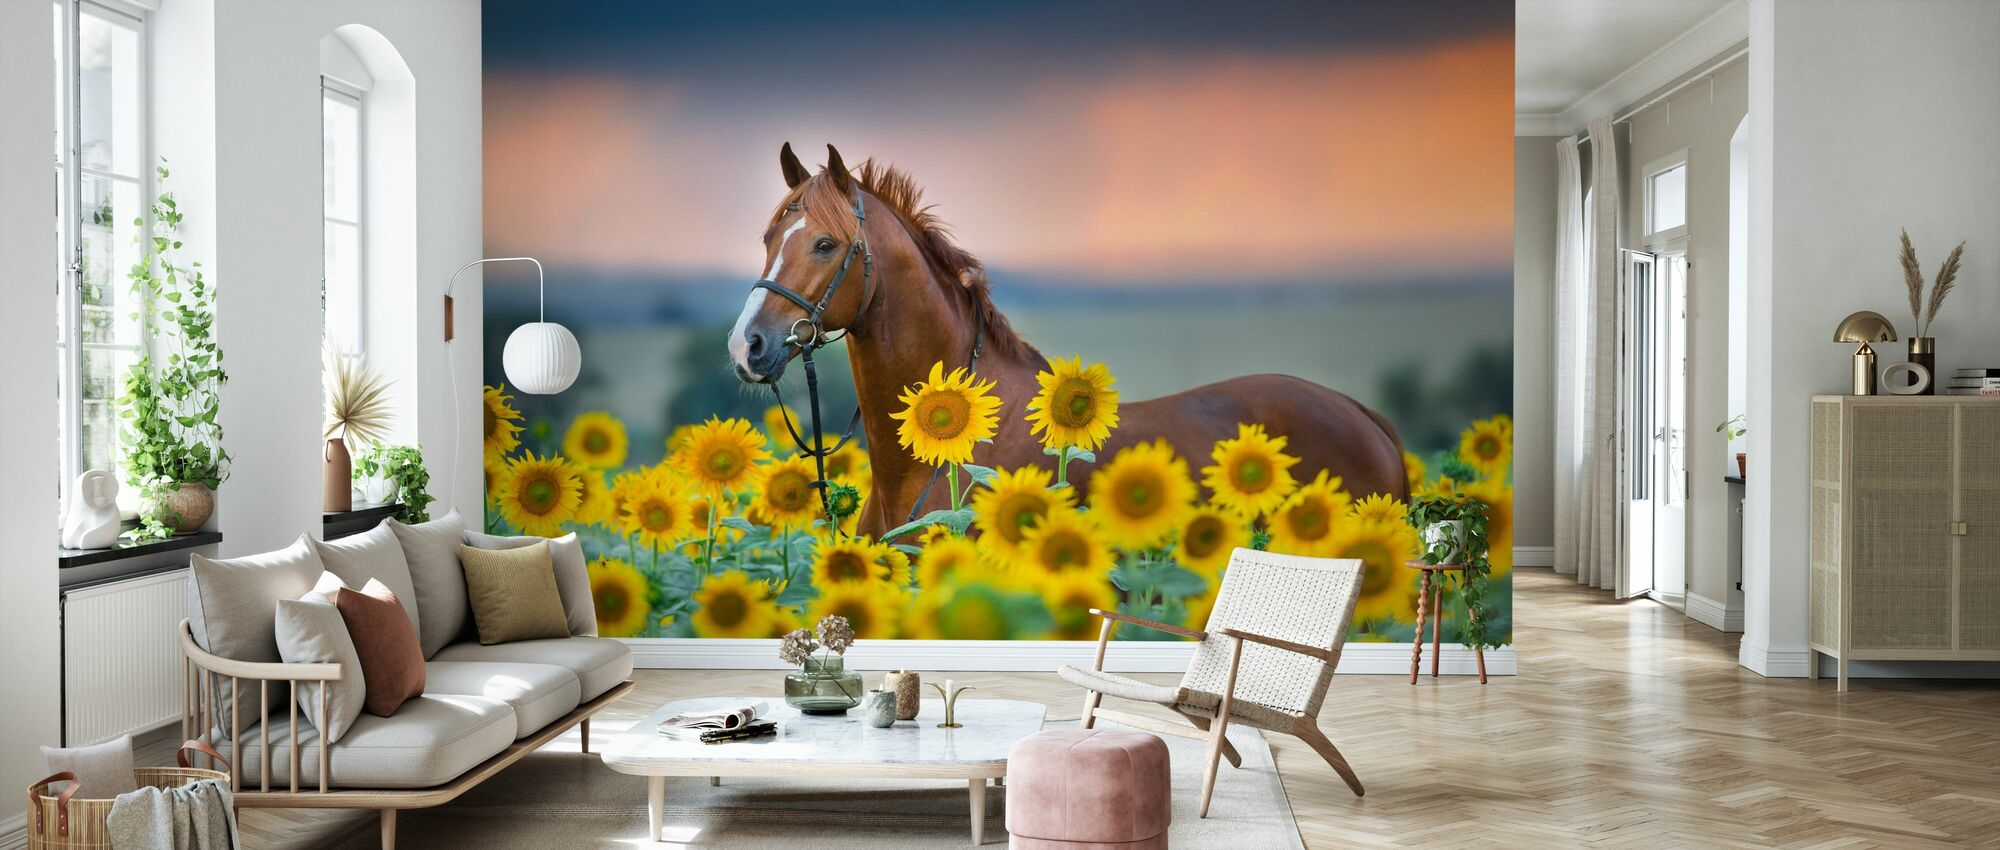 Red horse in Sunflowers Field - Wallpaper - Living Room